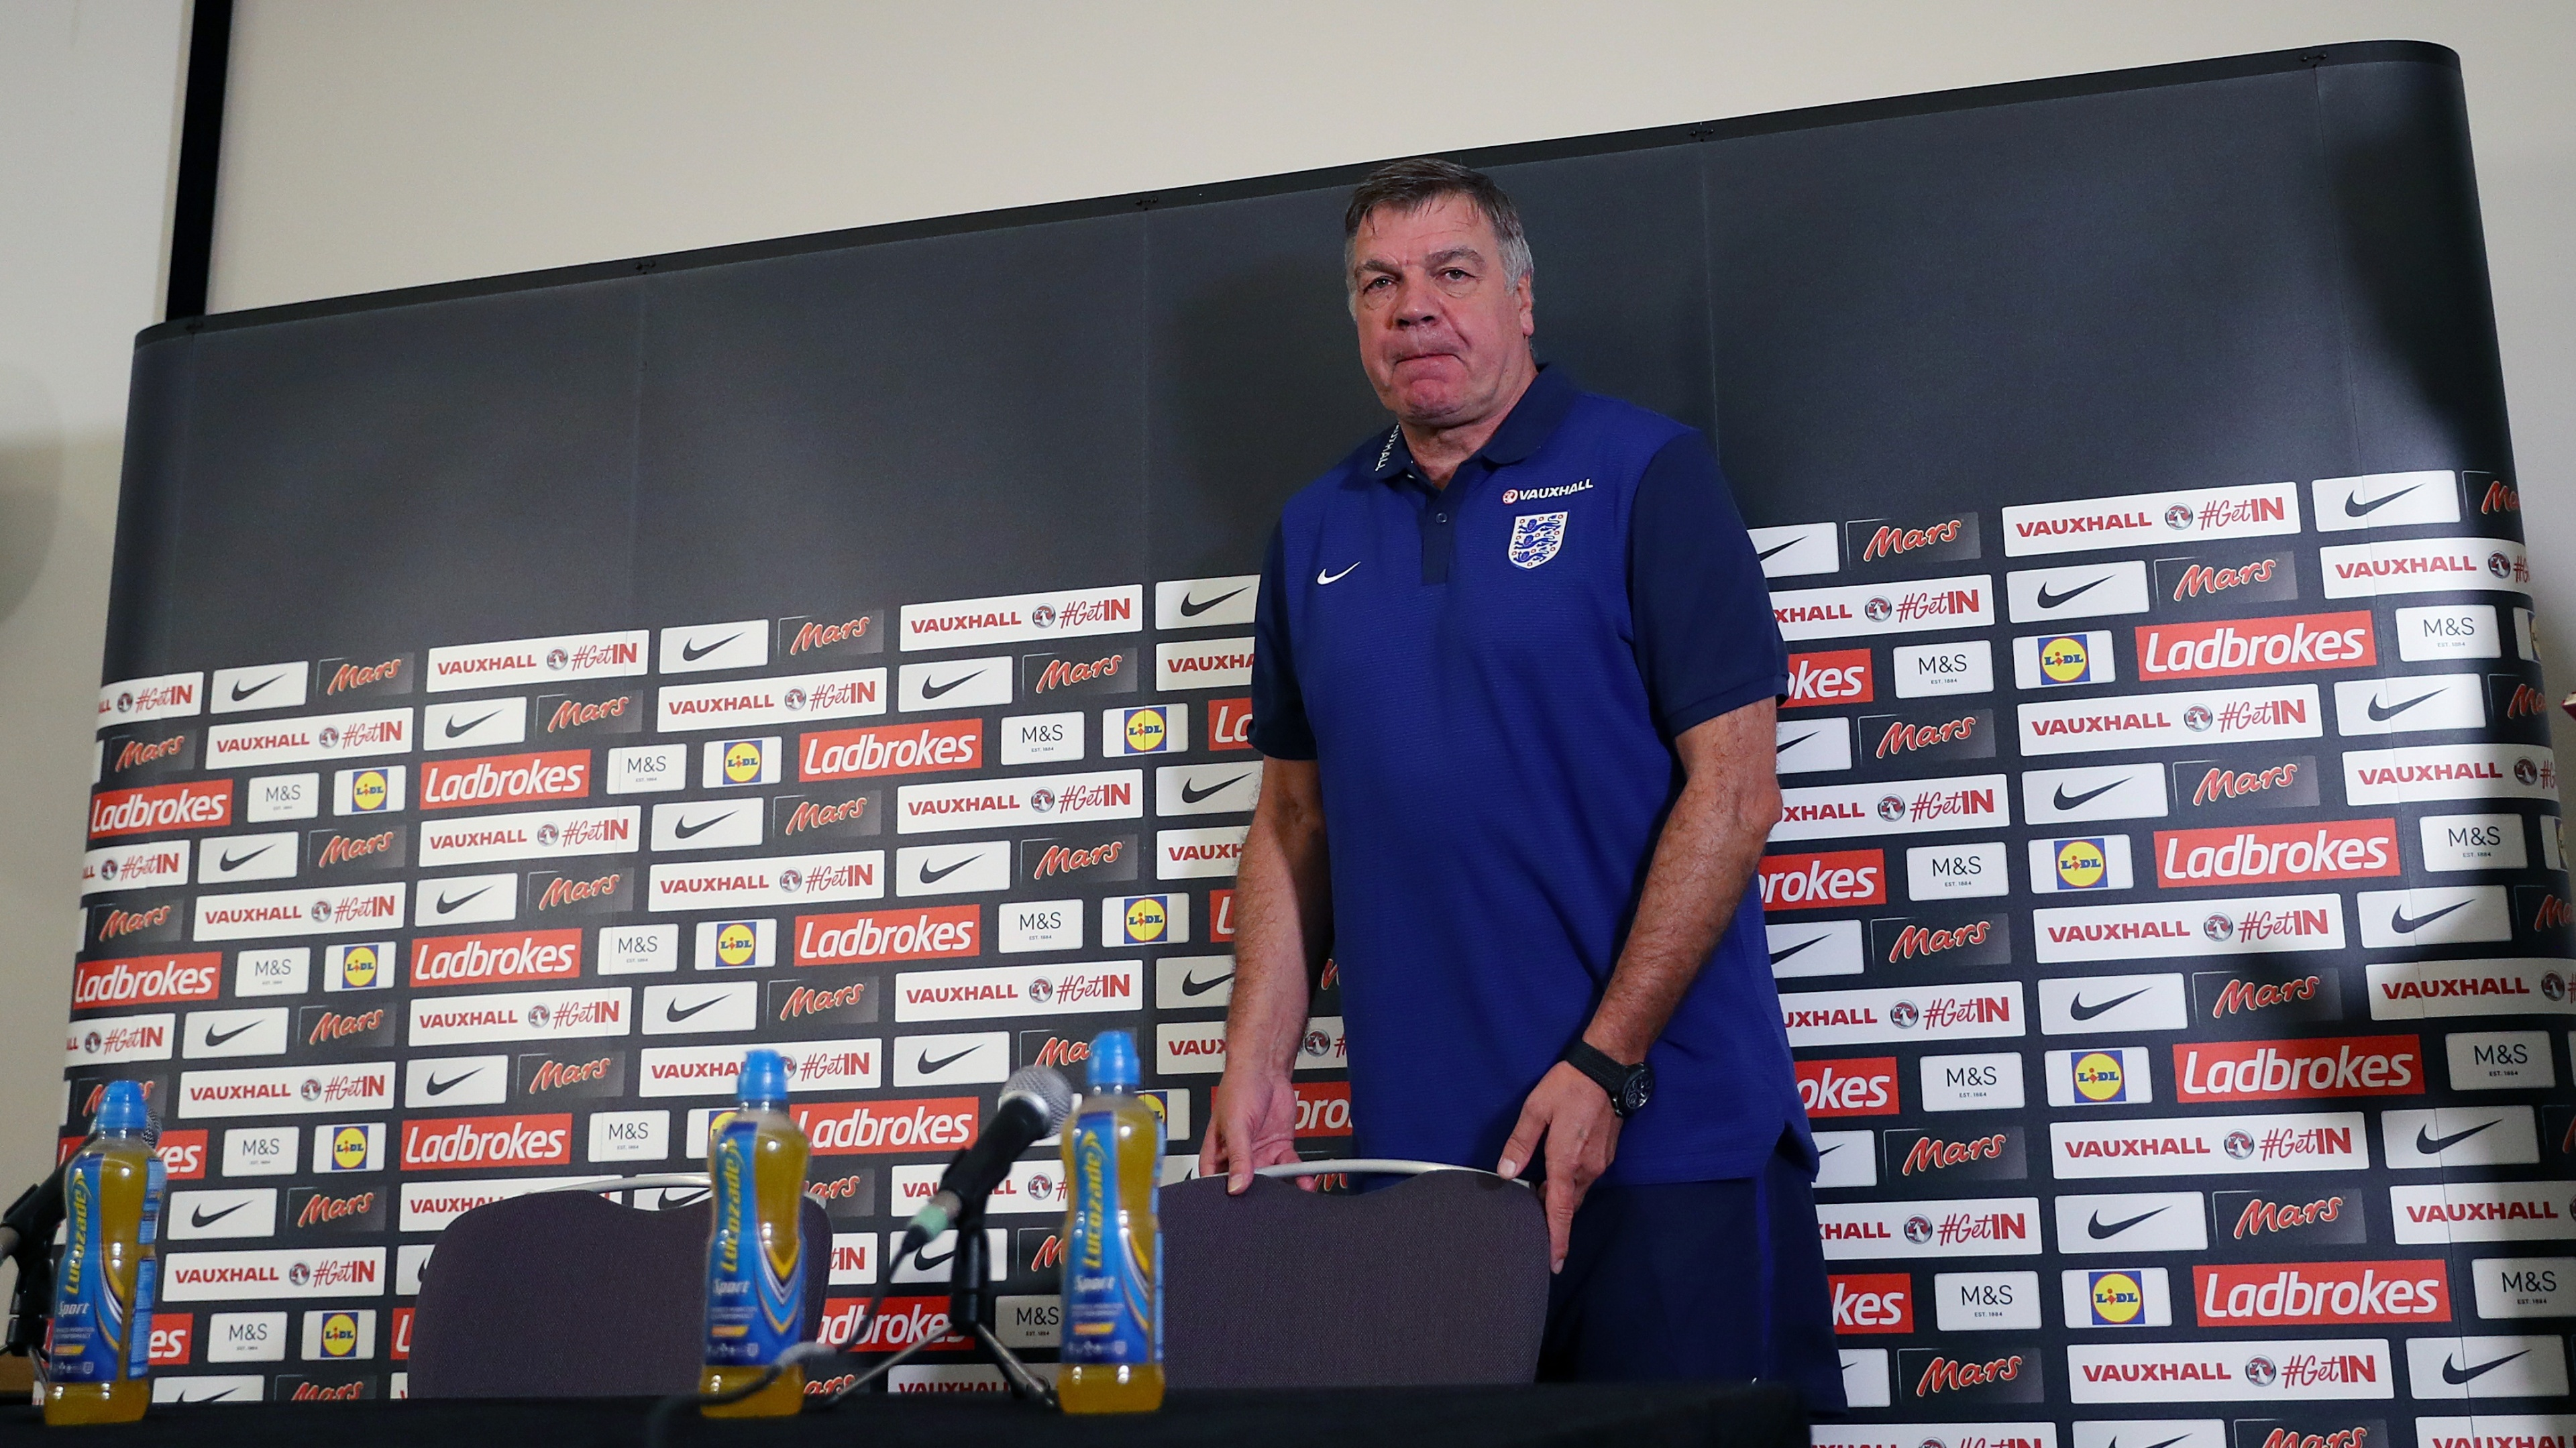 Allardyce was filmed in discussion by undercover reporters.